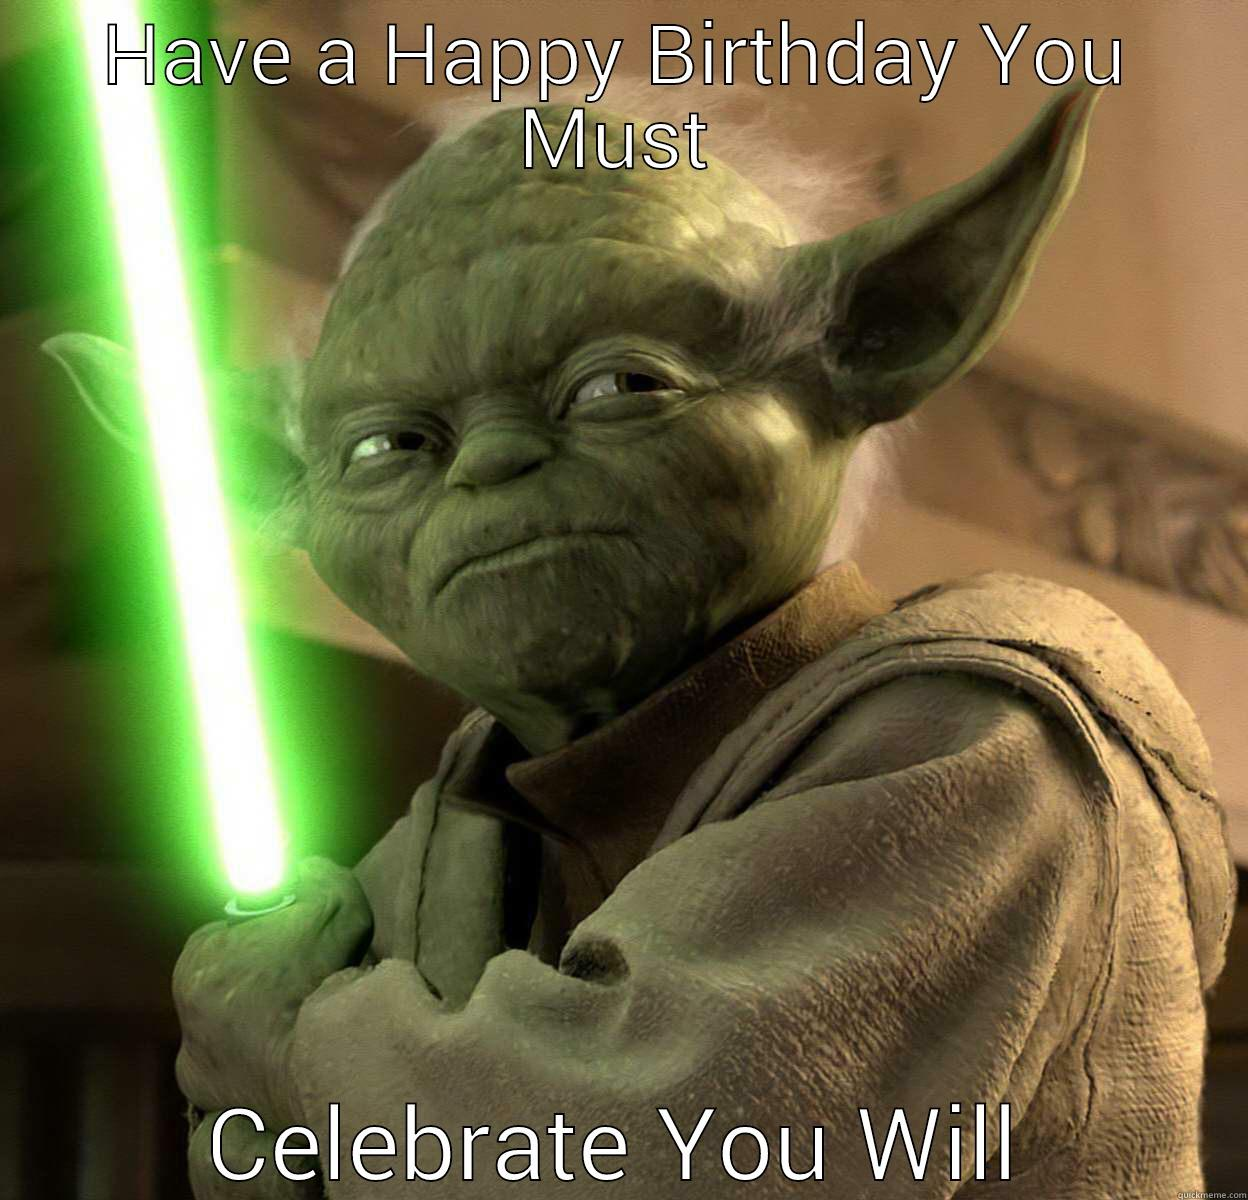 20 Ideas for Yoda Birthday Quotes – Home Inspiration and DIY ...